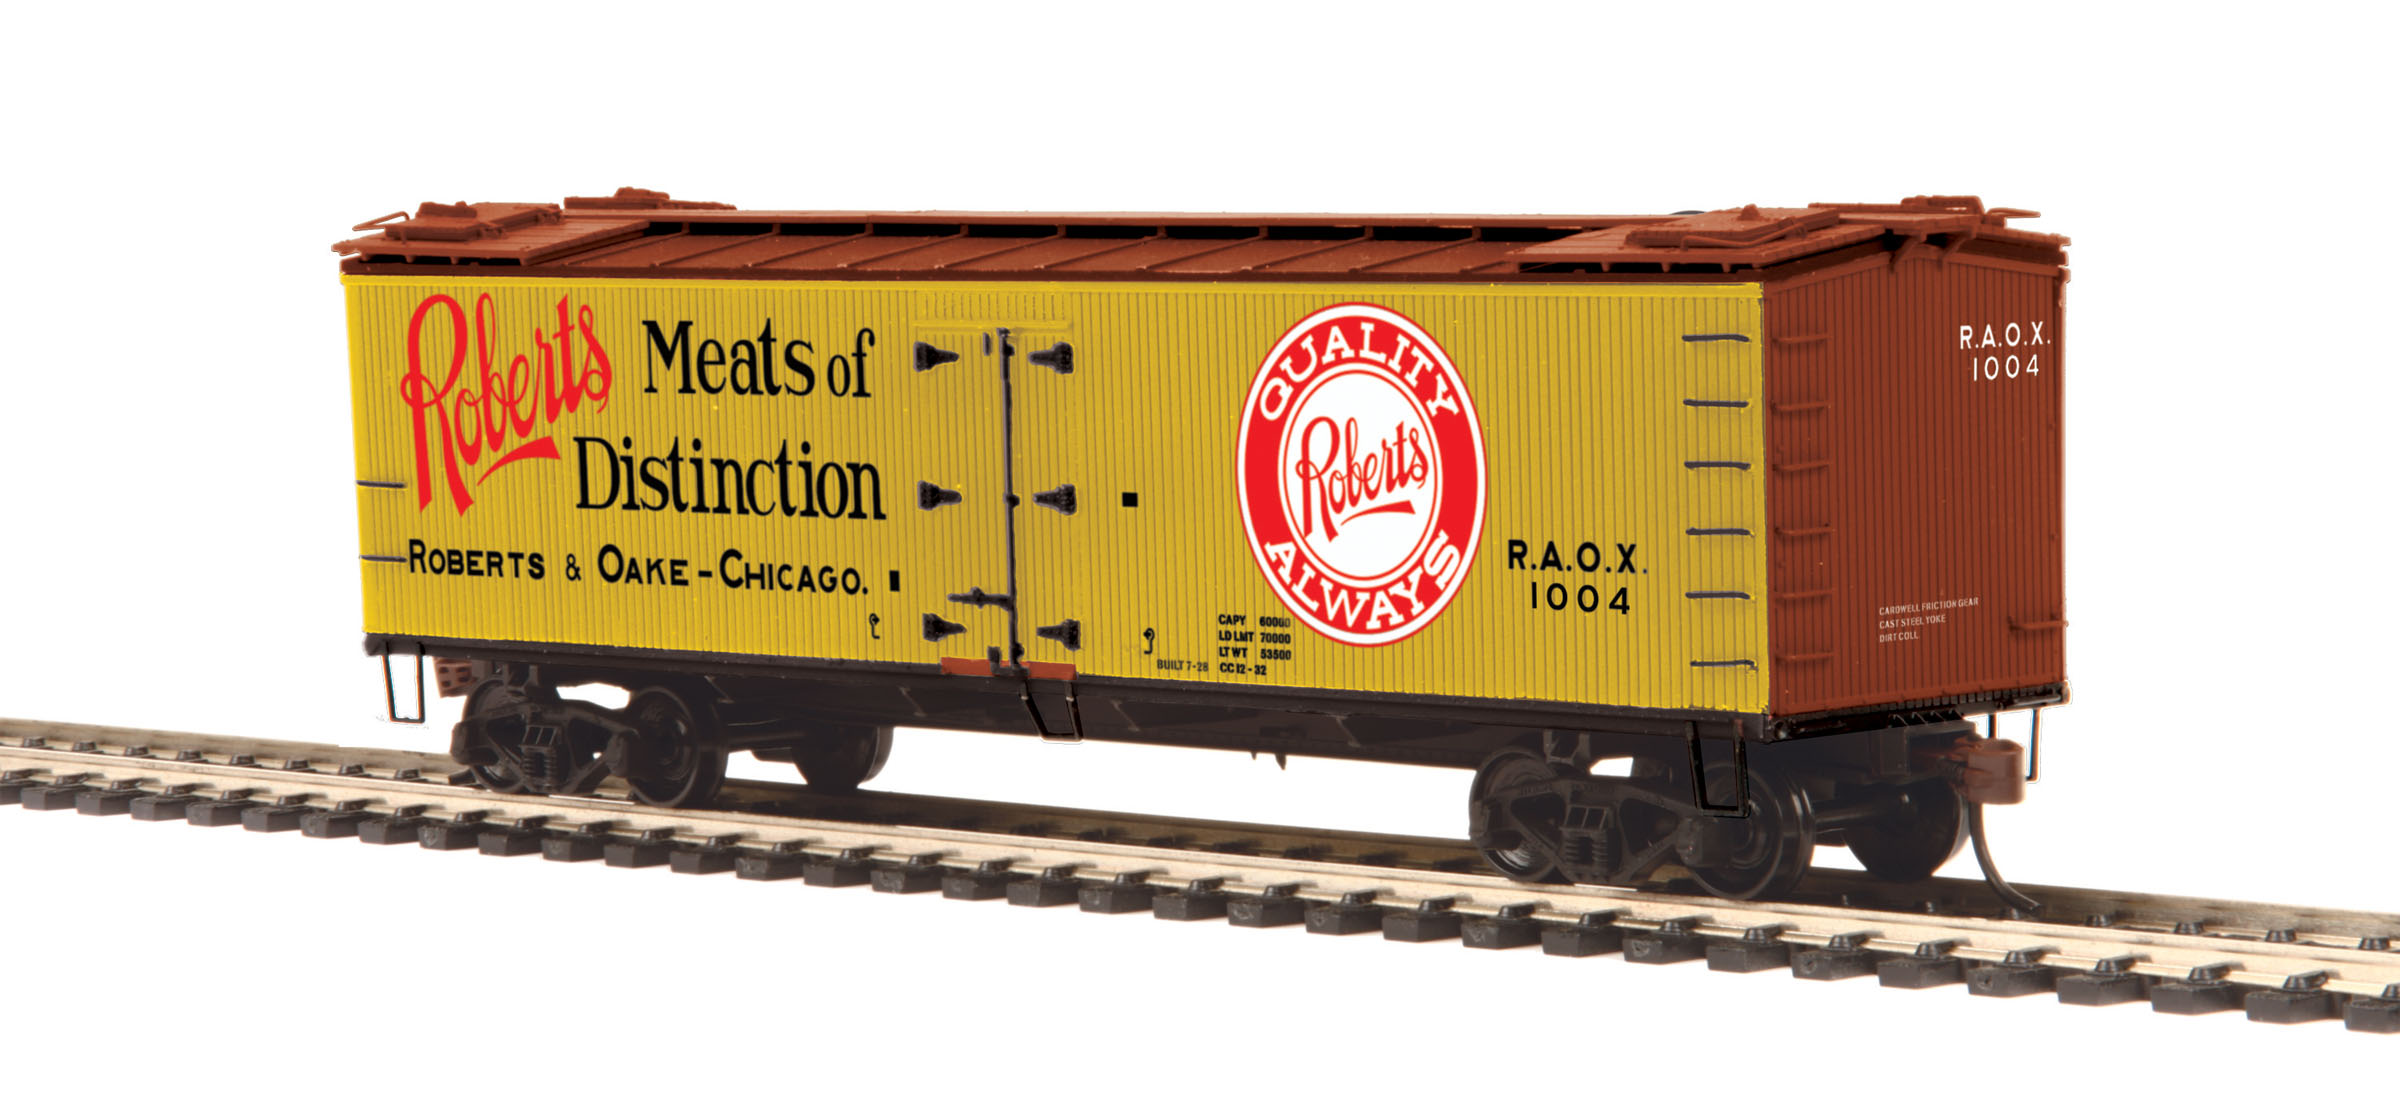 MTH 80-94052 HO Woodside Reefer Roberts & Oake Meats #1004 This is MTH 80-94052 HO Woodside Reefer Roberts & Oake Meats #1004. The coming of the railroad changed the way America ate and drank. Before the iron horse connected every town of any importance to the outside world, most food was grown or produced locally. The arrival of cheap, fast, refrigerated transport - in the form of the woodsided reefer with ice bunkers at each end - enabled local brewers, dairies, meat processors, and other food businesses to become players on a national scale.Until 1934, shippers could advertise their wares on leased bill - board reefers, each a hand-painted traveling work of art. That year, the Interstate Commerce Commission outlawed the flamboyant paint schemes because the cars often hauled shipments from other companies - whose freight bills thus unfairly paid to advertise the lessee's products.M.T.H. Electric Trains' HO premium rolling stock like this R40-2 reefer car are true 1/87 scale models of North American freight cars. Abundantly detailed with separate grab irons, steps, hatches and brake wheels ensure that these models will hold up to even the most discrminating eye. Outfitted with smooth rolling trucks and Kadee couplers make them a favorite of operators who enjoy long consists of colorful liveries, each available in multiple car numbers.Its key features are:Intricately detailed durable ABS bodyMetal wheels and axlesDecorative brake wheelsSeparate metal handrails1:87 scale dimensionsKadee® couplersDetailed undercarriageDetailed 4-wheel trucksUnit measures: 6 x 1 5/16 x 1 7/8Operates on 18 radius curvesCondition: Factory New (C-9All original; unused; factory rubs and evidence of handling, shipping and factory test run.Standards for all toy train related accessory items apply to the visual appearance of the item and do not consider the operating functionality of the equipment.Condition and Grading Standards are subjective, at best, and are intended to act as a guide. )Operation